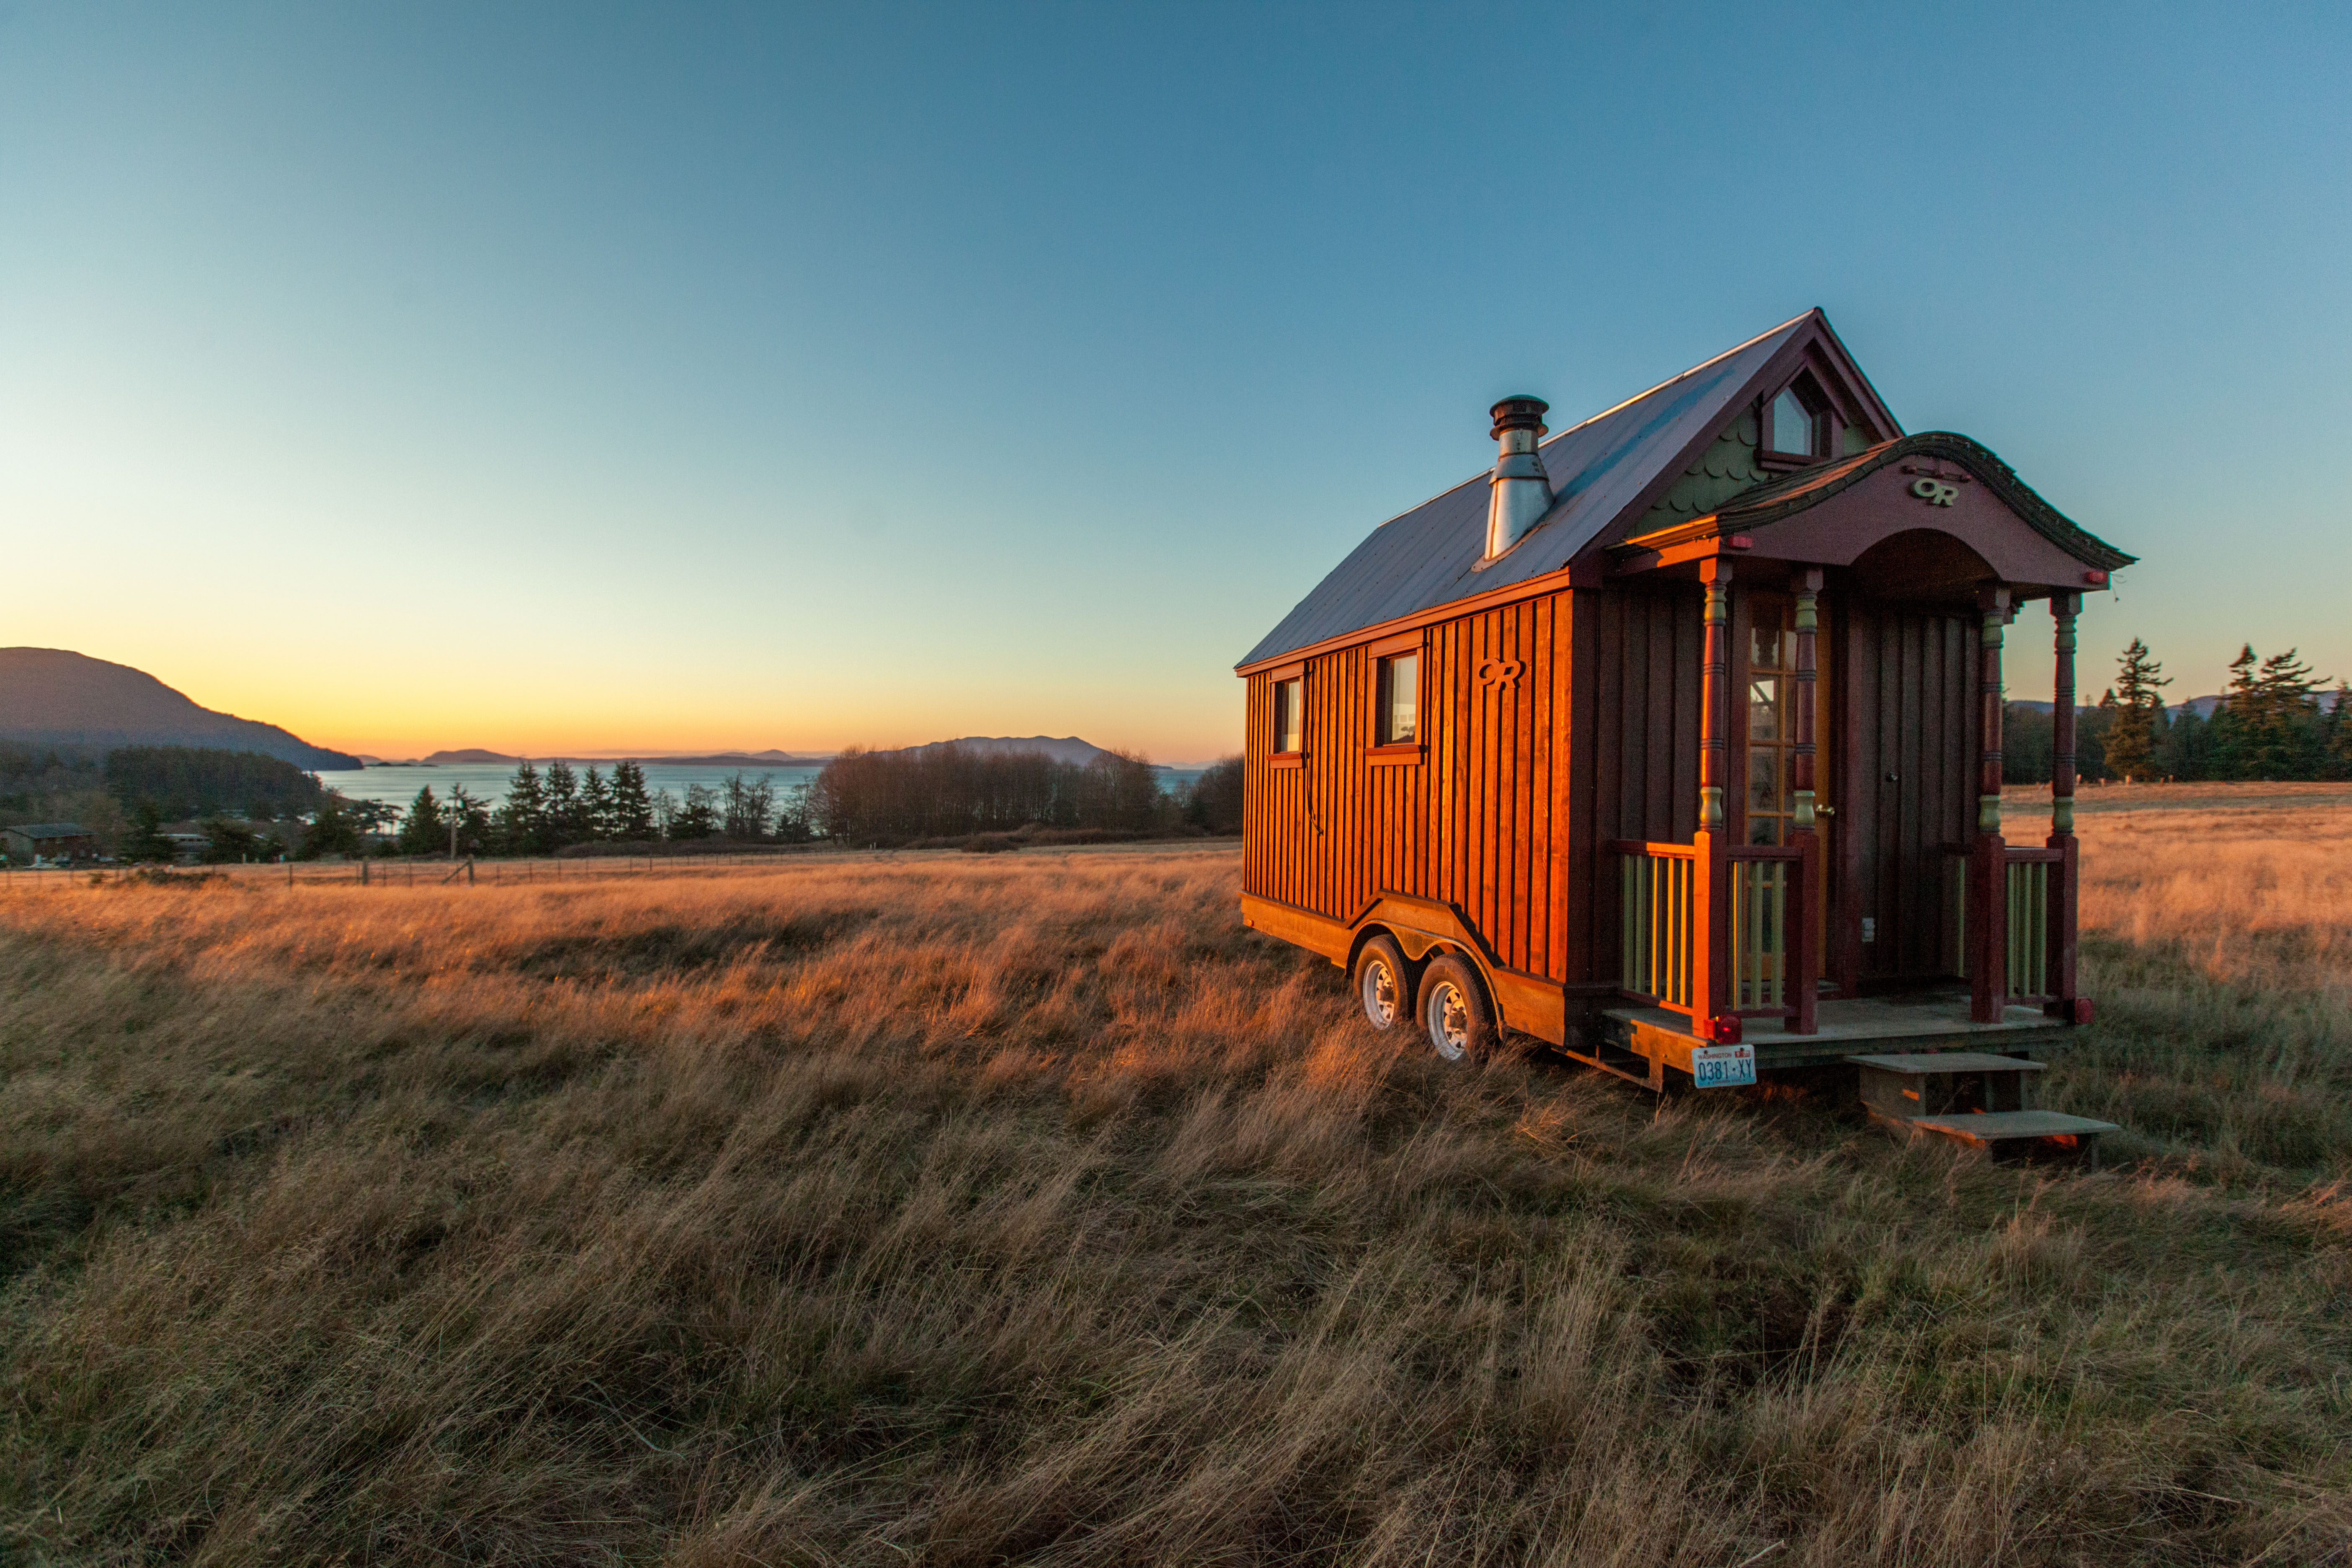 tiny house nation' host talks about being happy with less - zillow